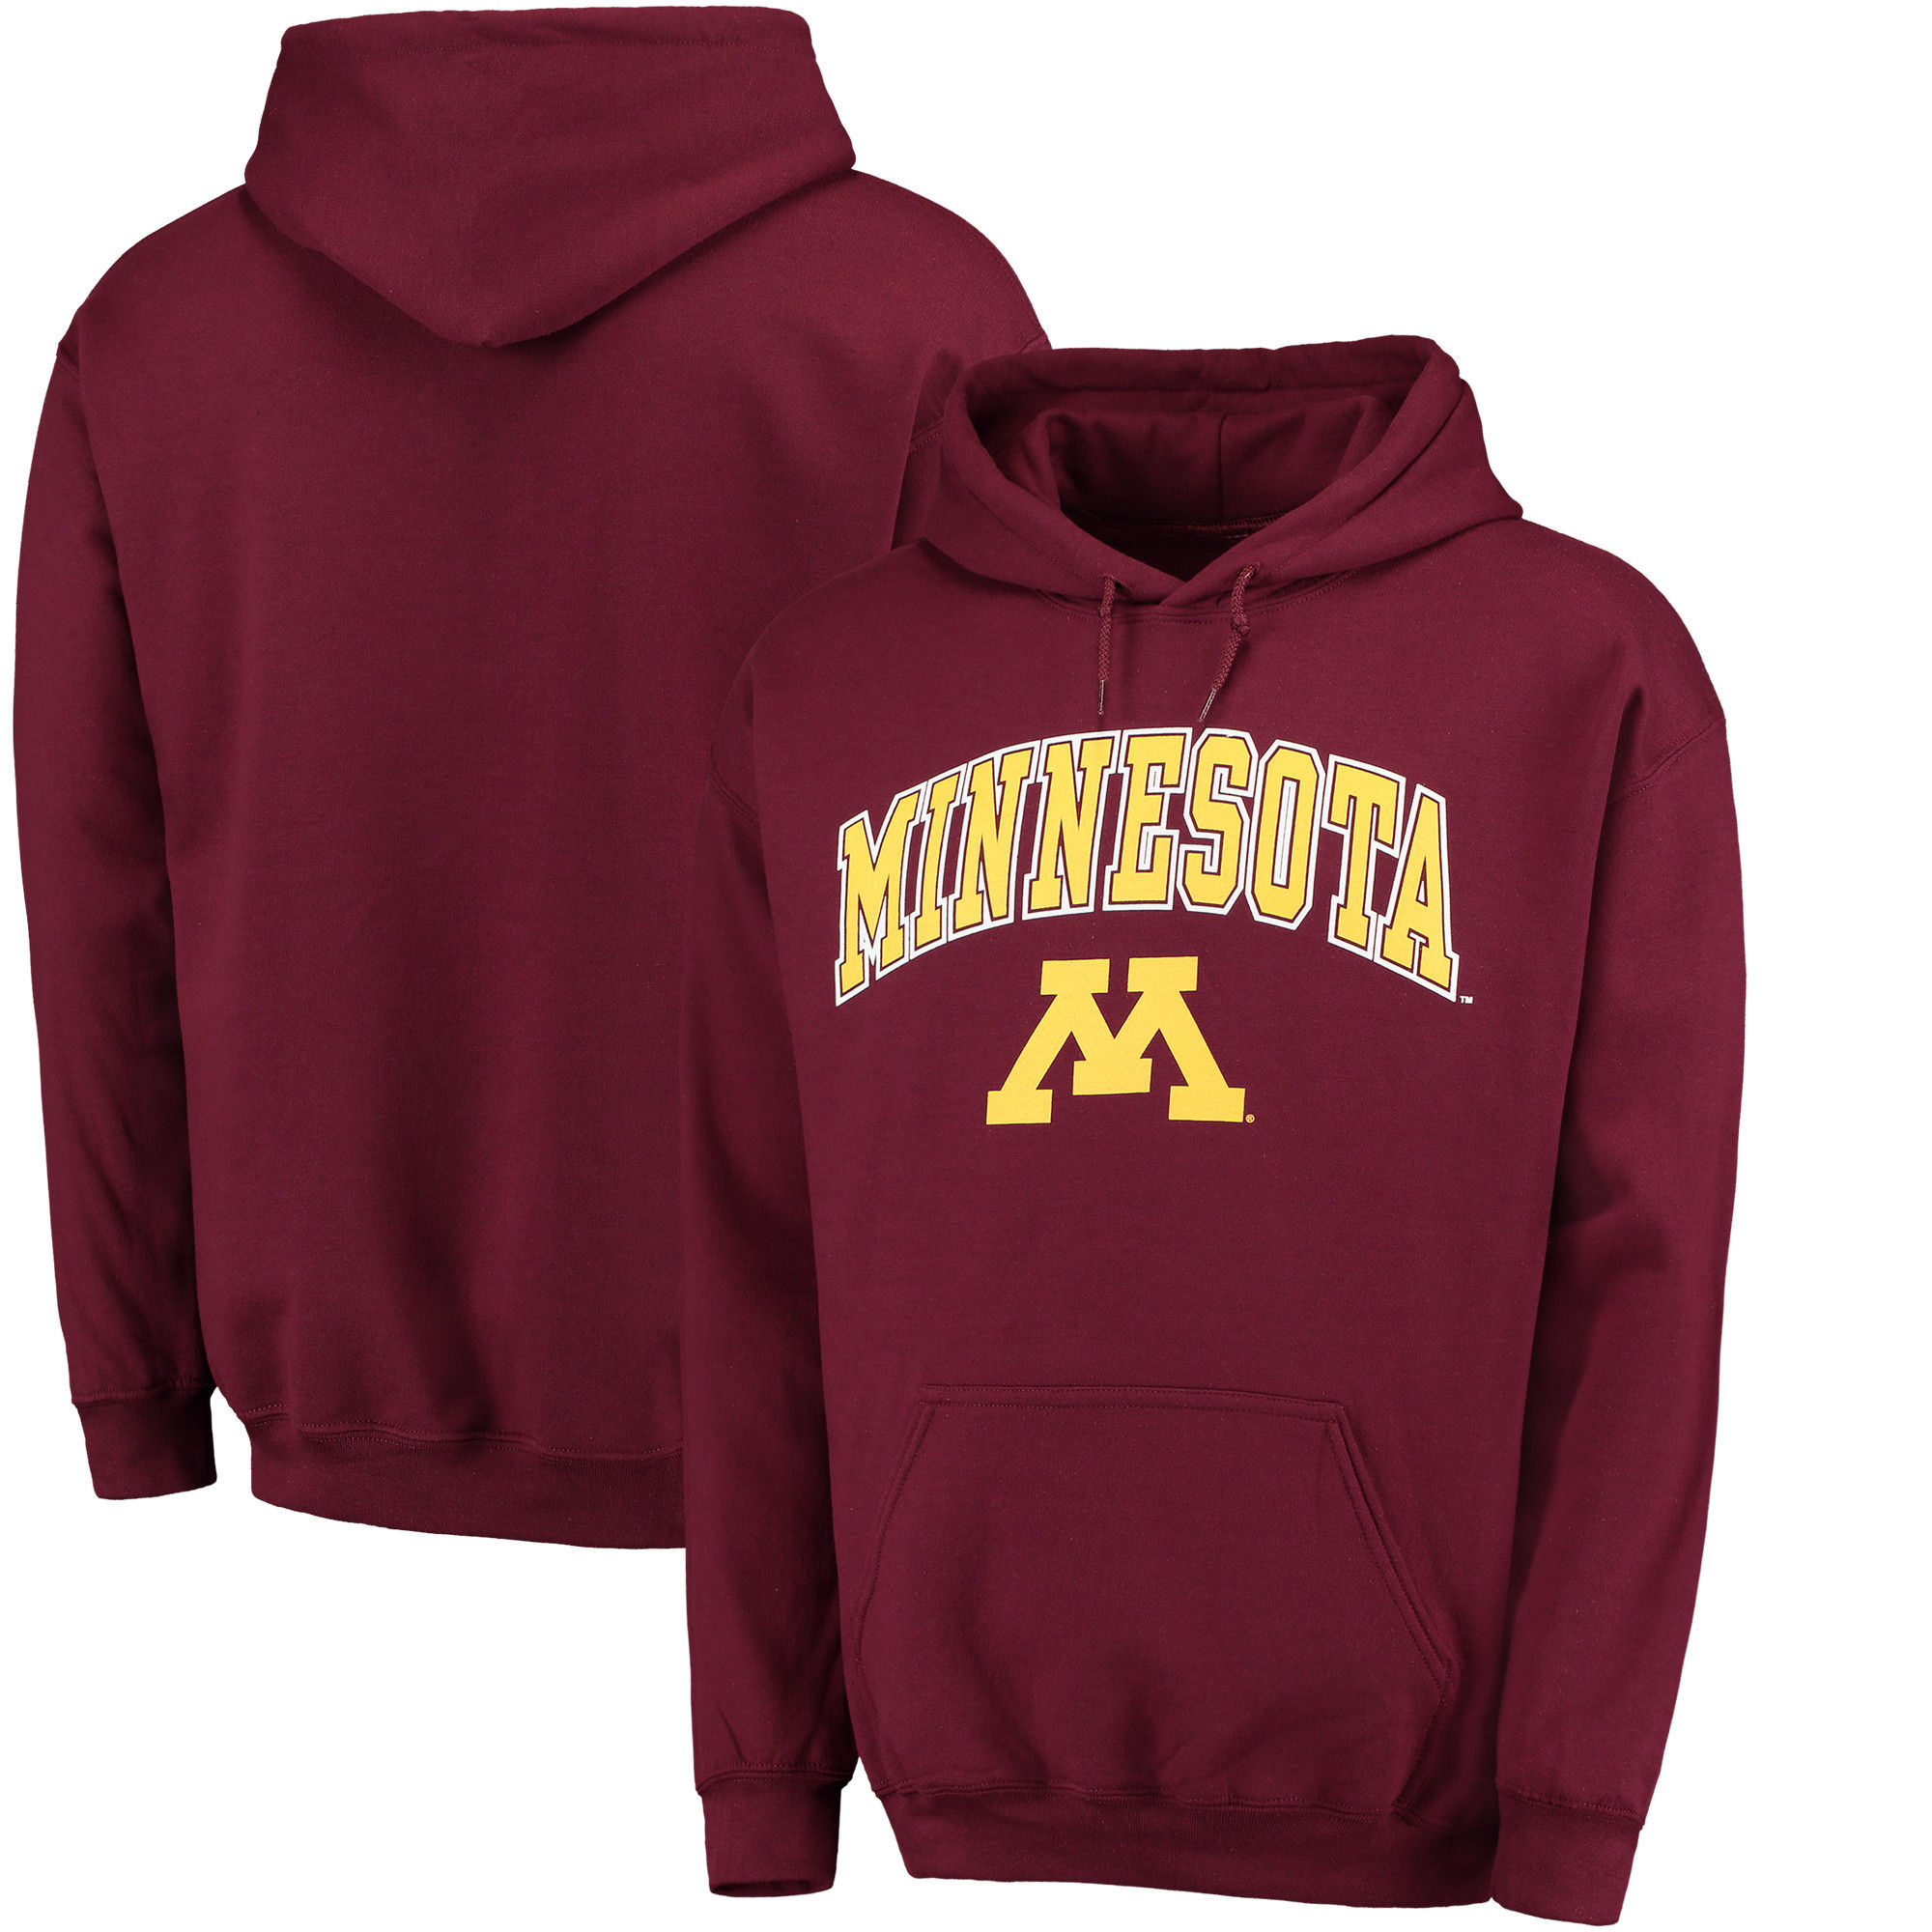 Minnesota Golden Gophers Maroon Campus Pullover Hoodie (1)